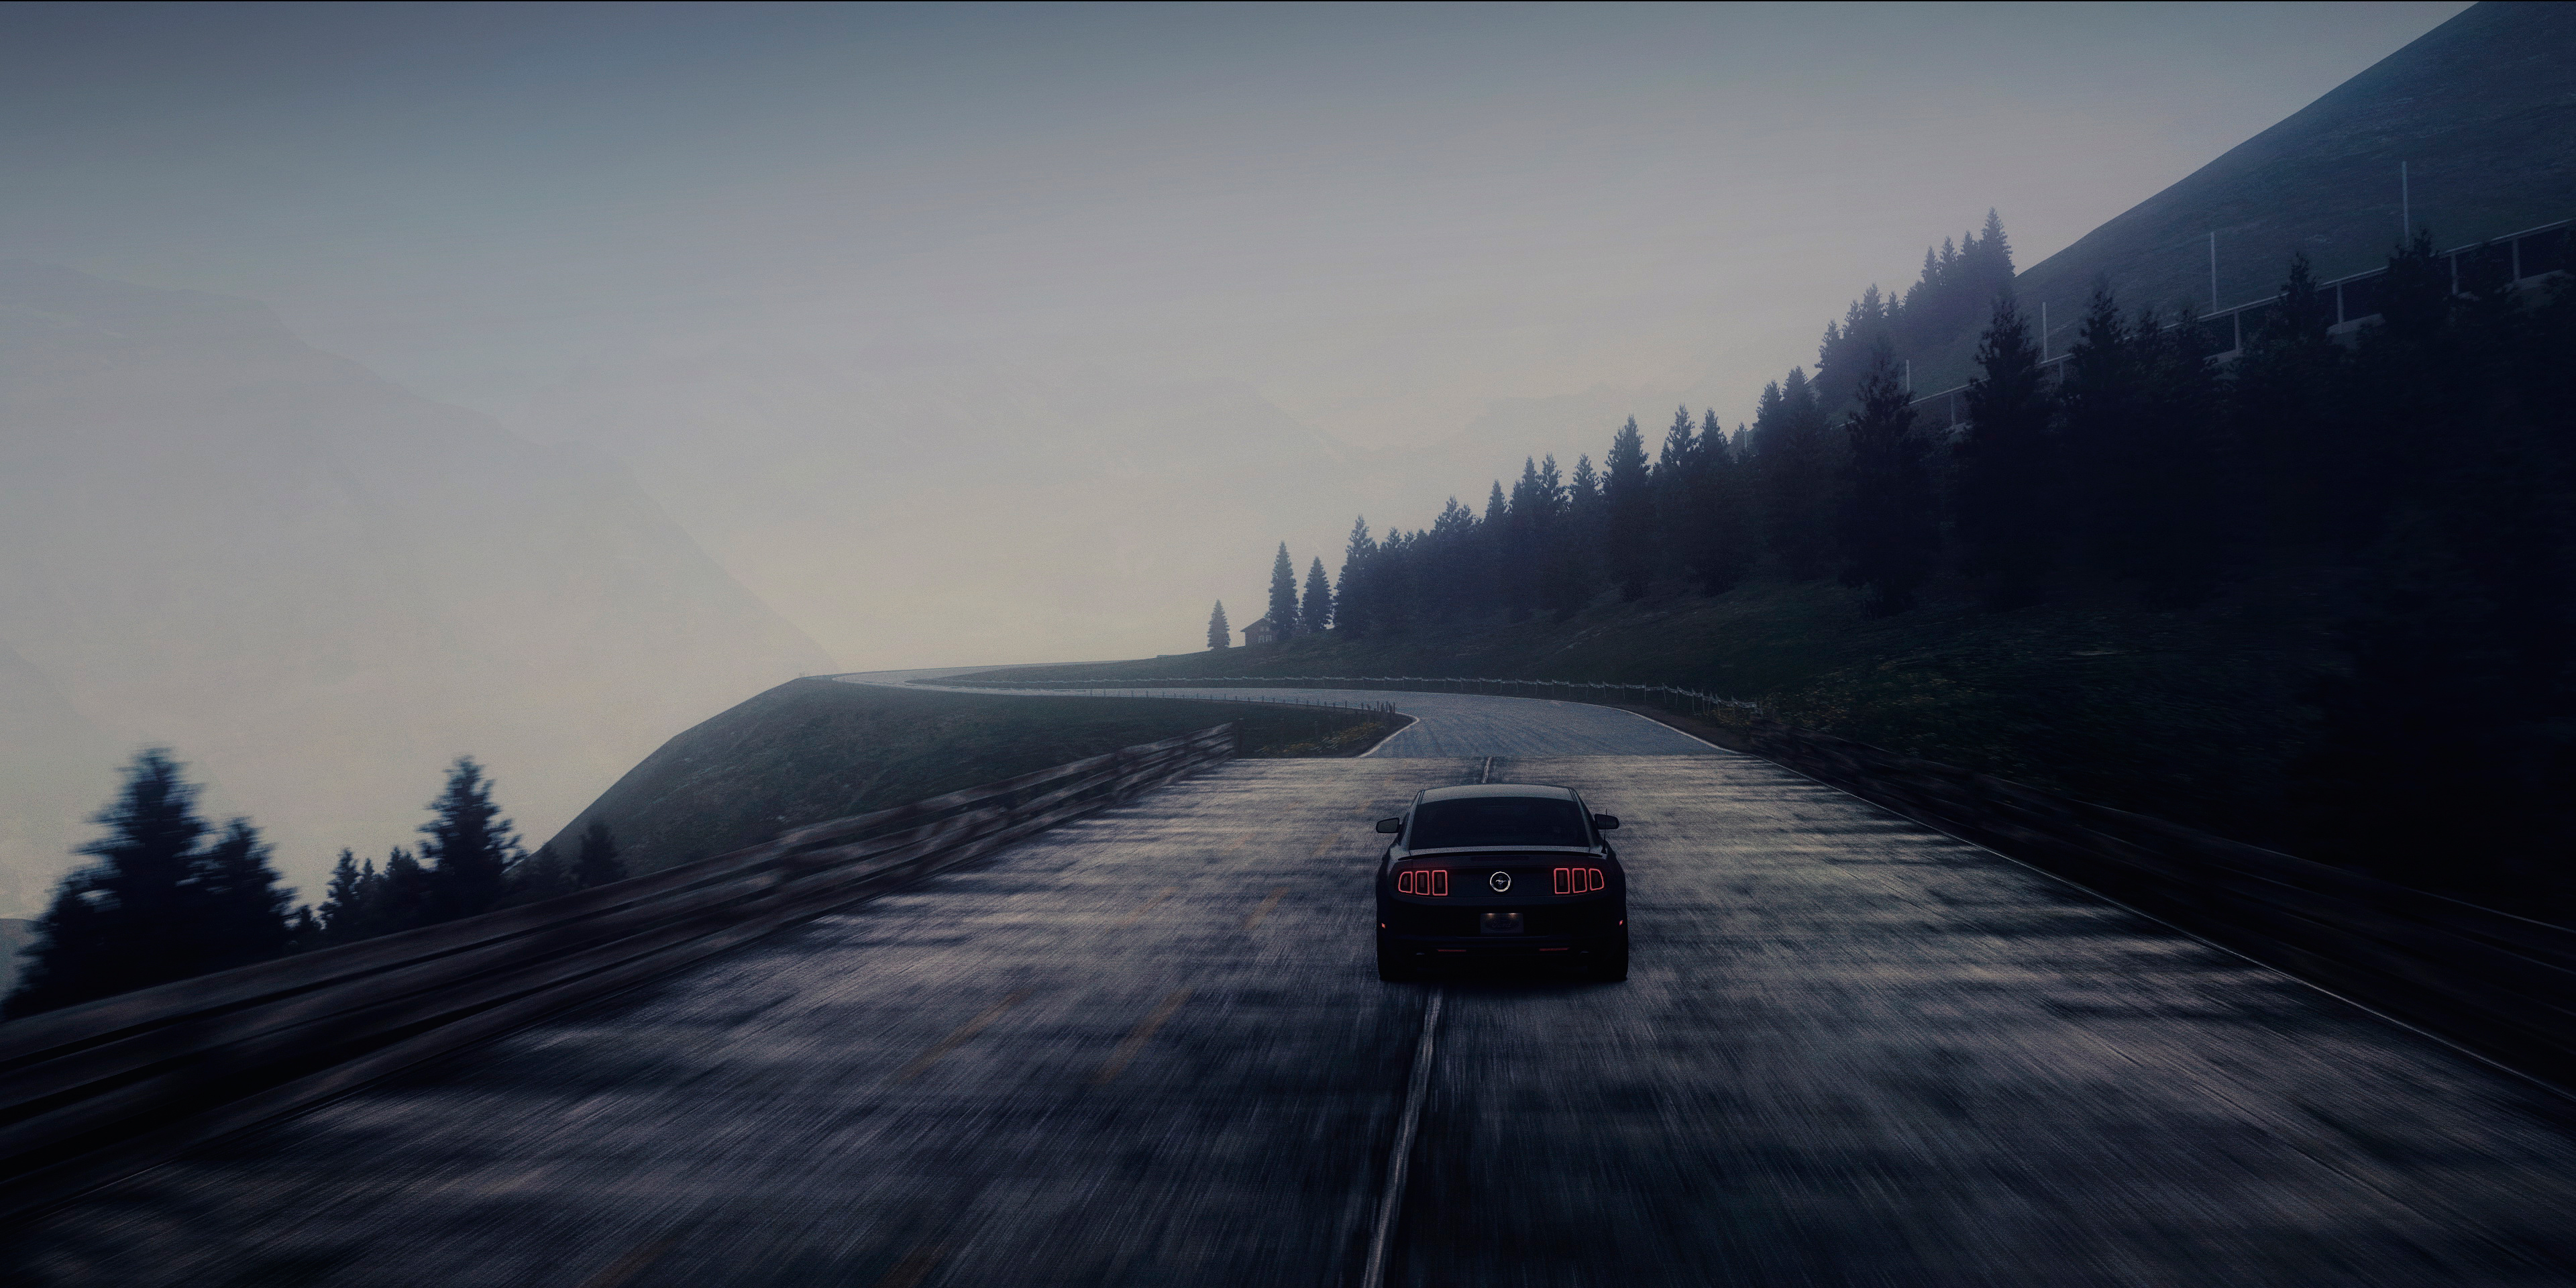 Car Dual Monitor Wallpaper 3840x1200 Ford Mustang Shelby Gt500 Full Hd Fond D 233 Cran And Arri 232 Re